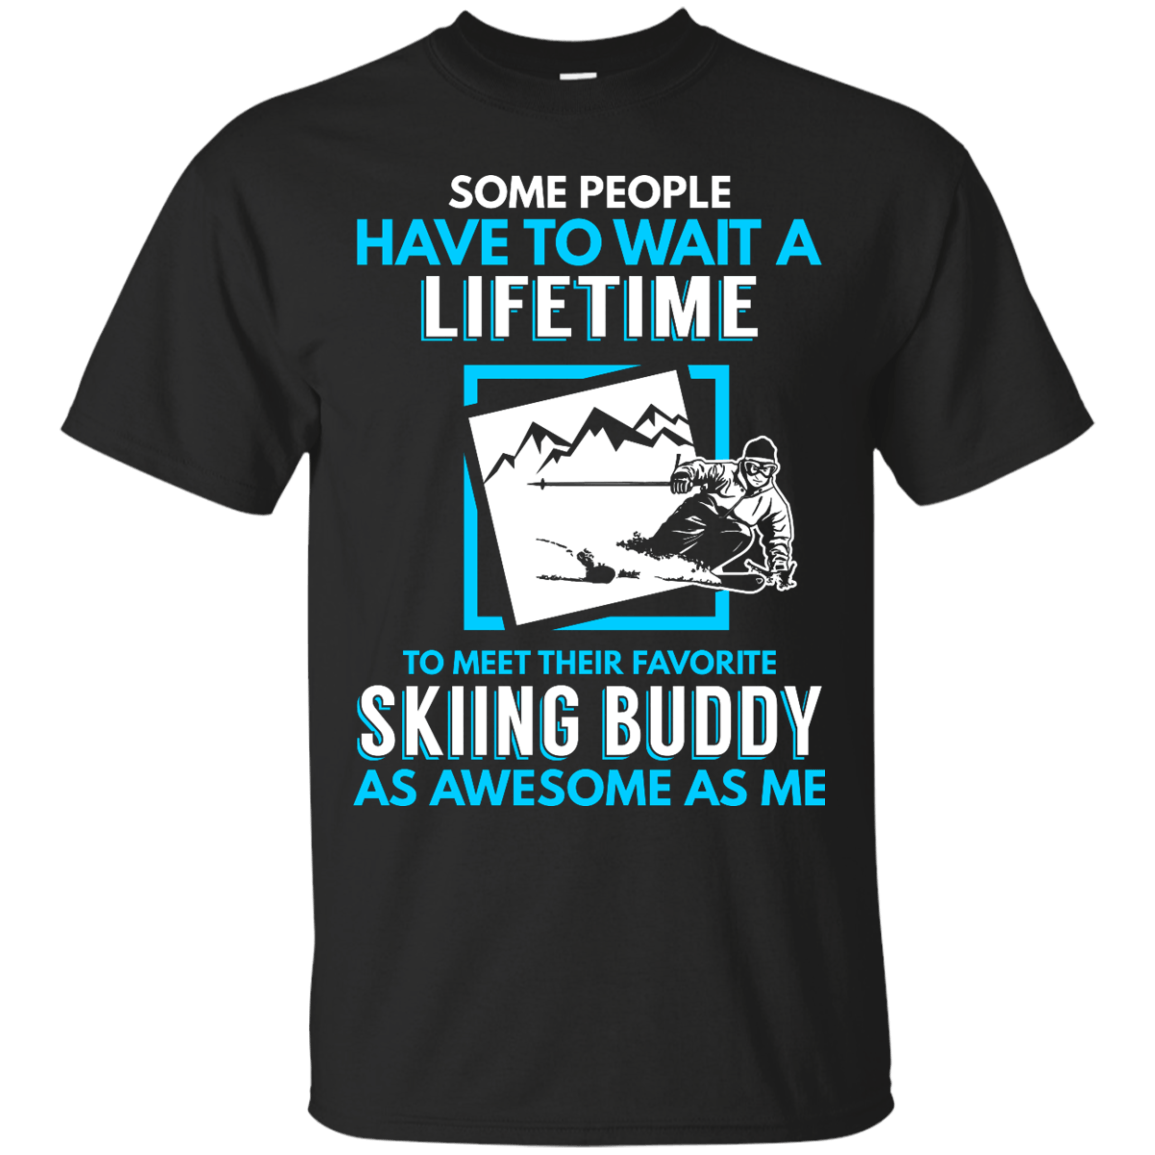 Skiing Buddy As Awesome As Me Tees - Powderaddicts